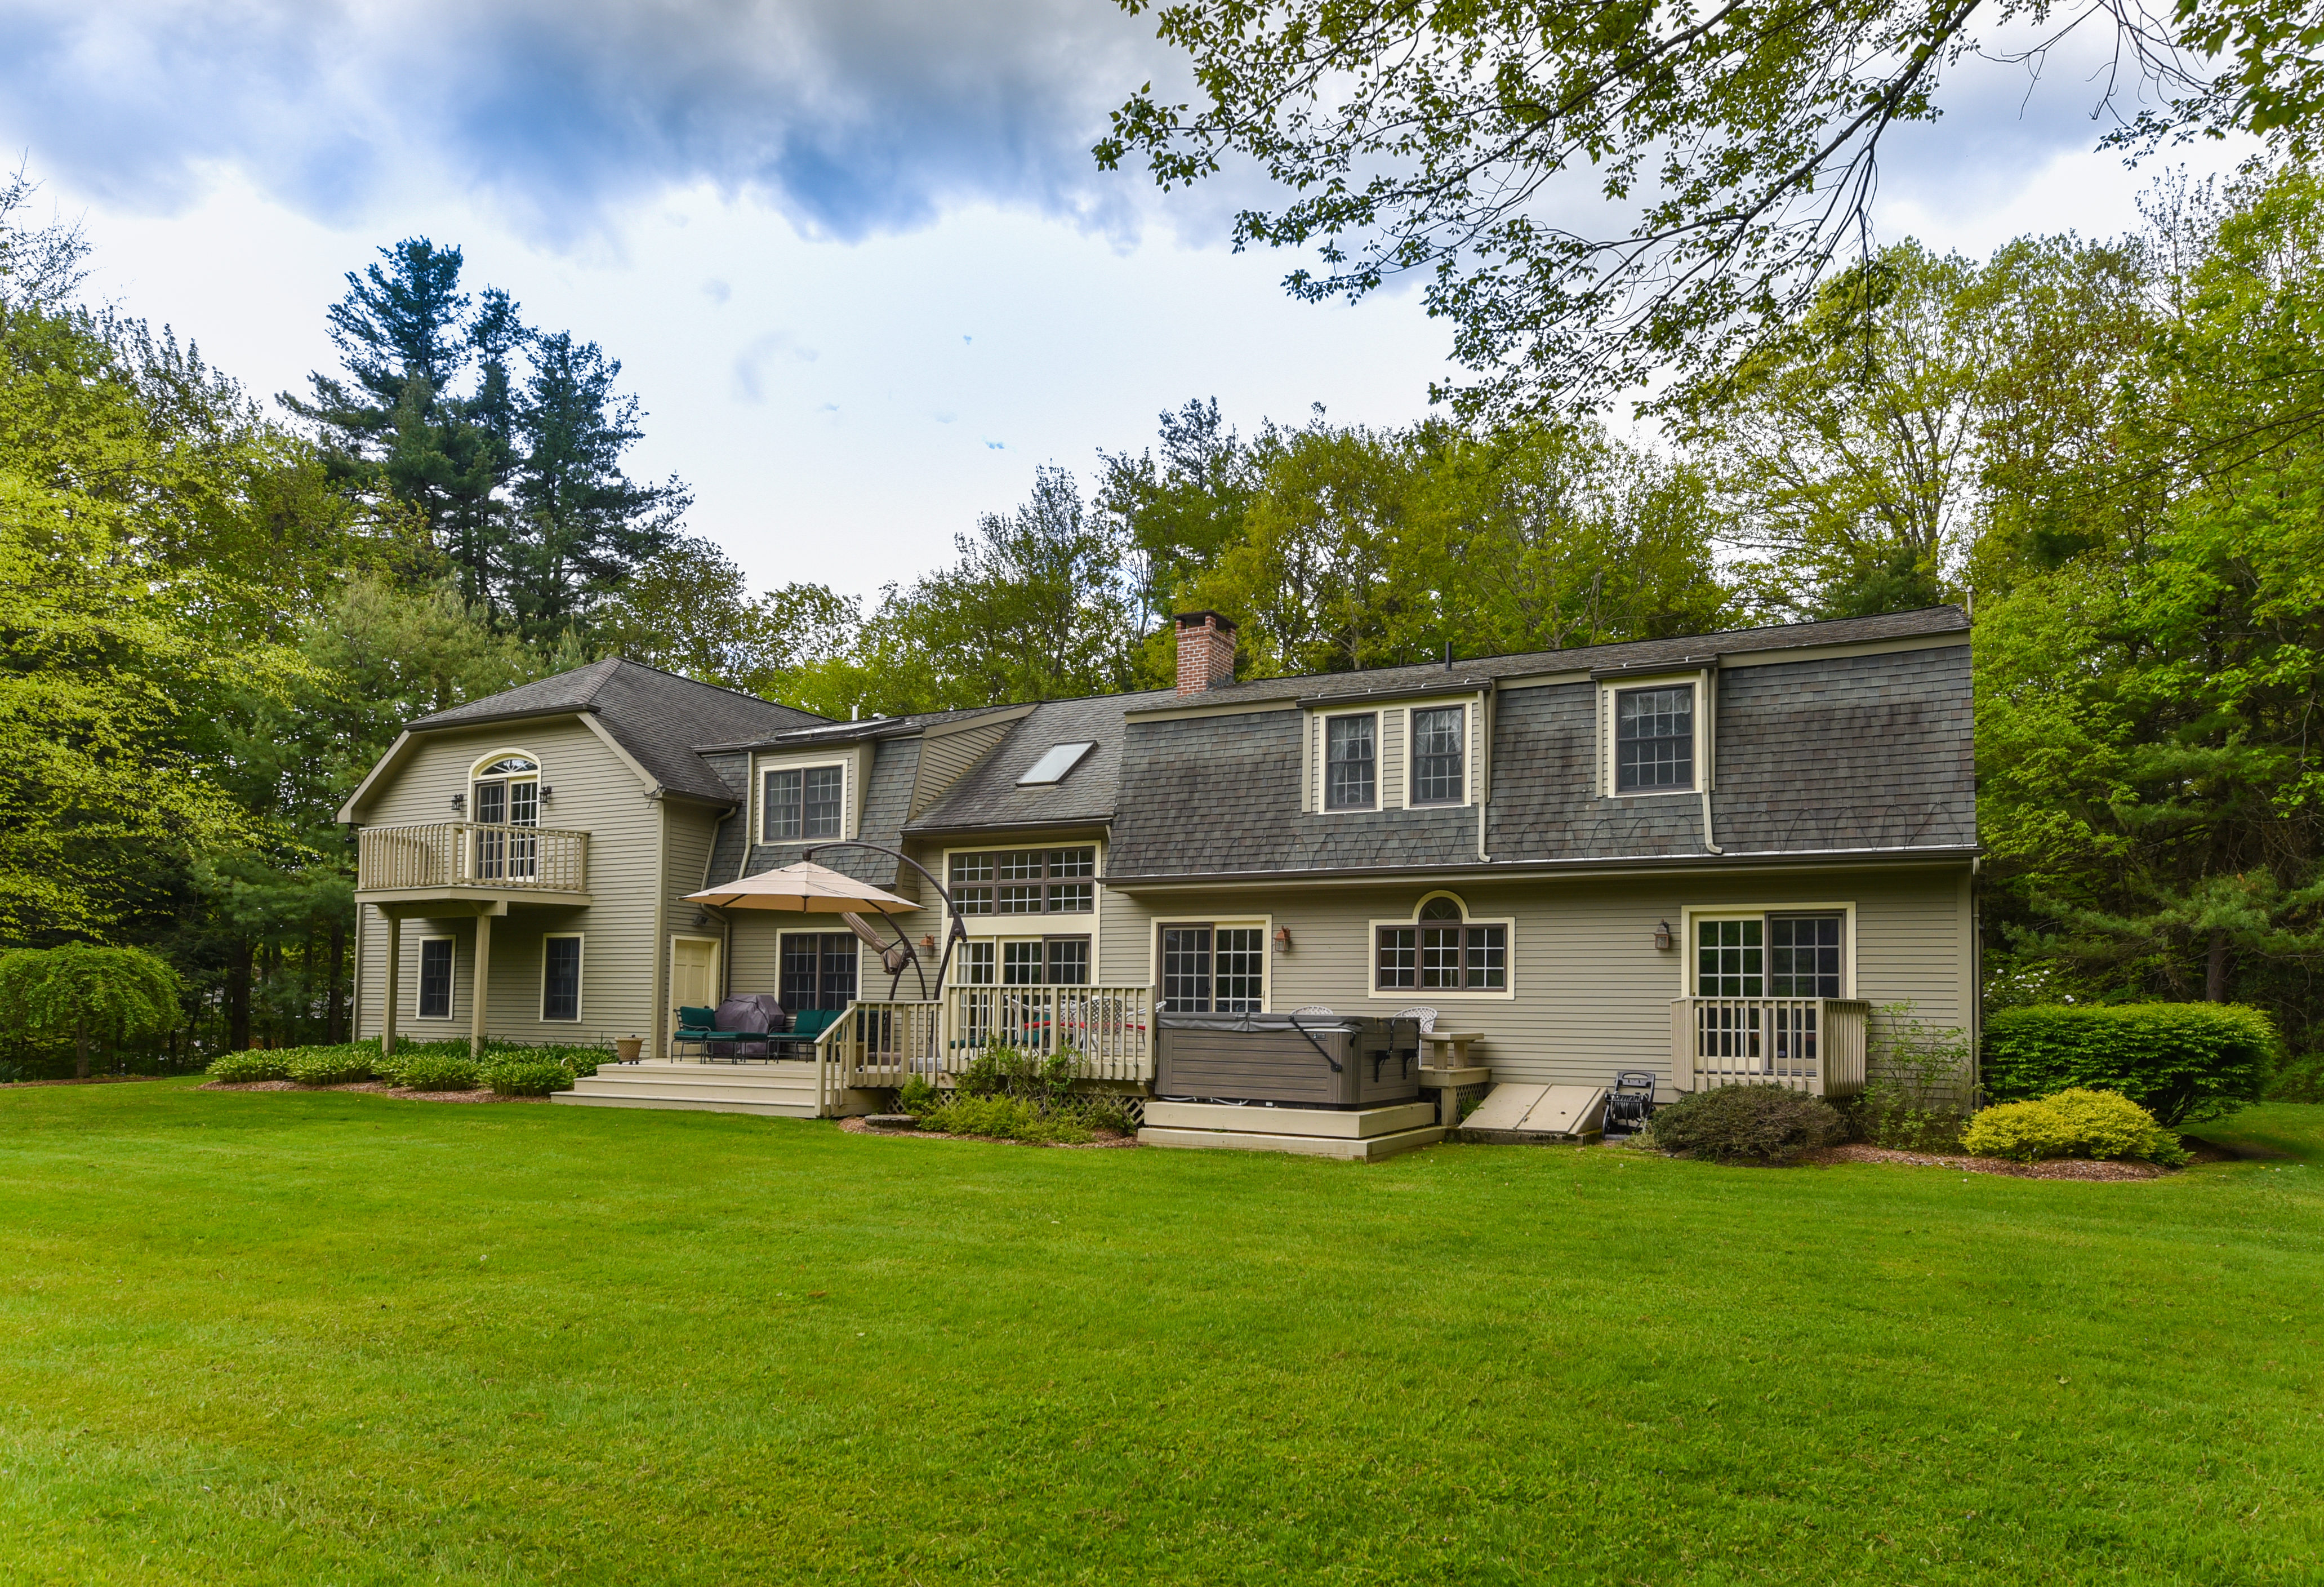 Casa unifamiliar en venta en/de 232 Goodhouse Road, Litchfield, Connecticut ,06759  , EUA